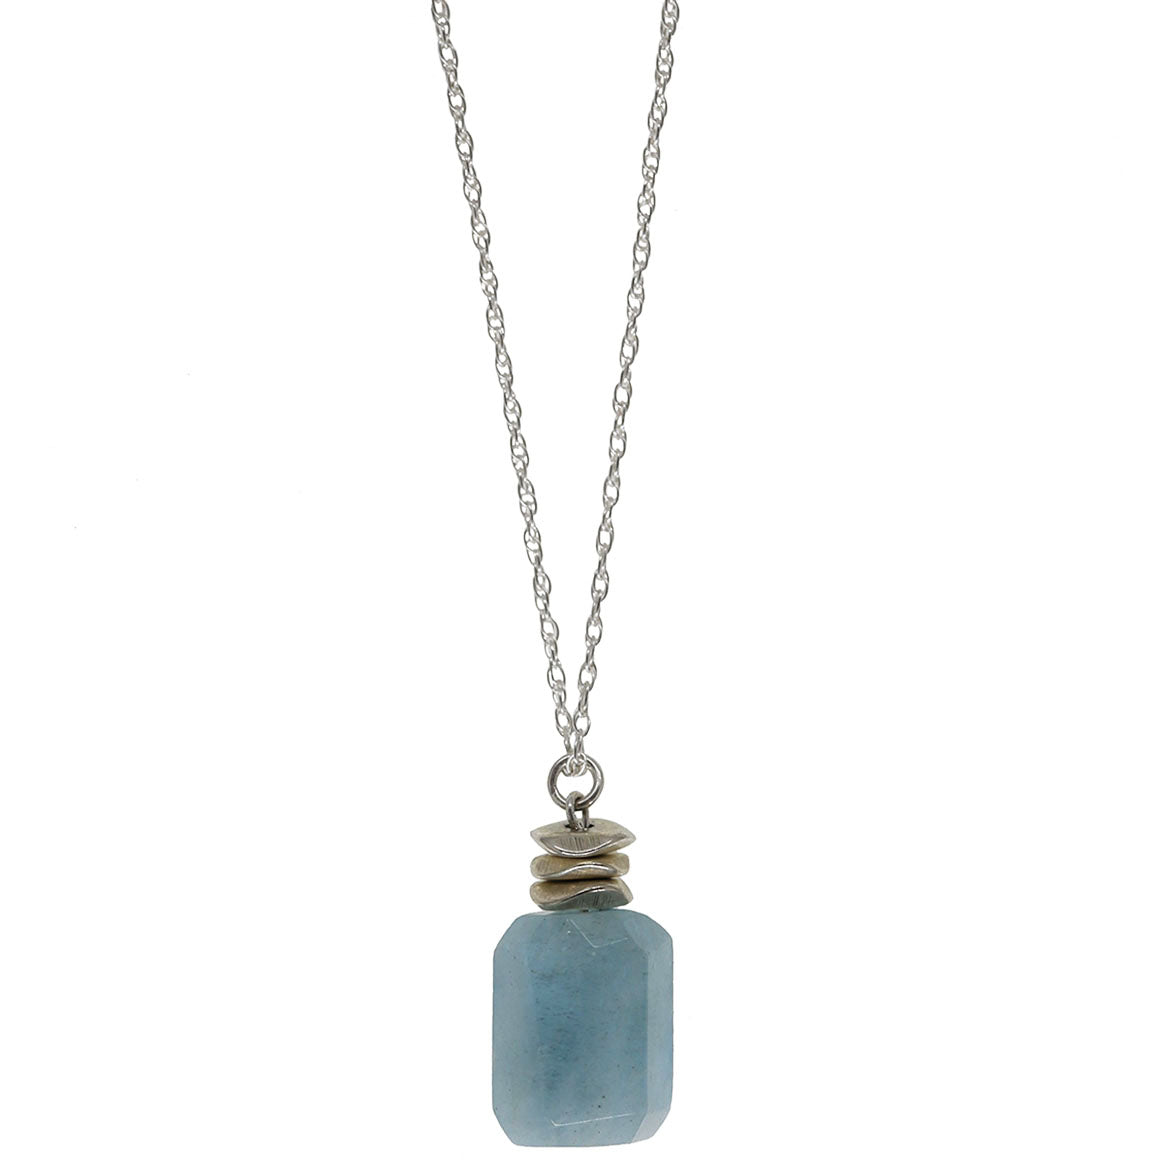 Nautical and Nice Necklace | Aquamarine and Sterling Silver